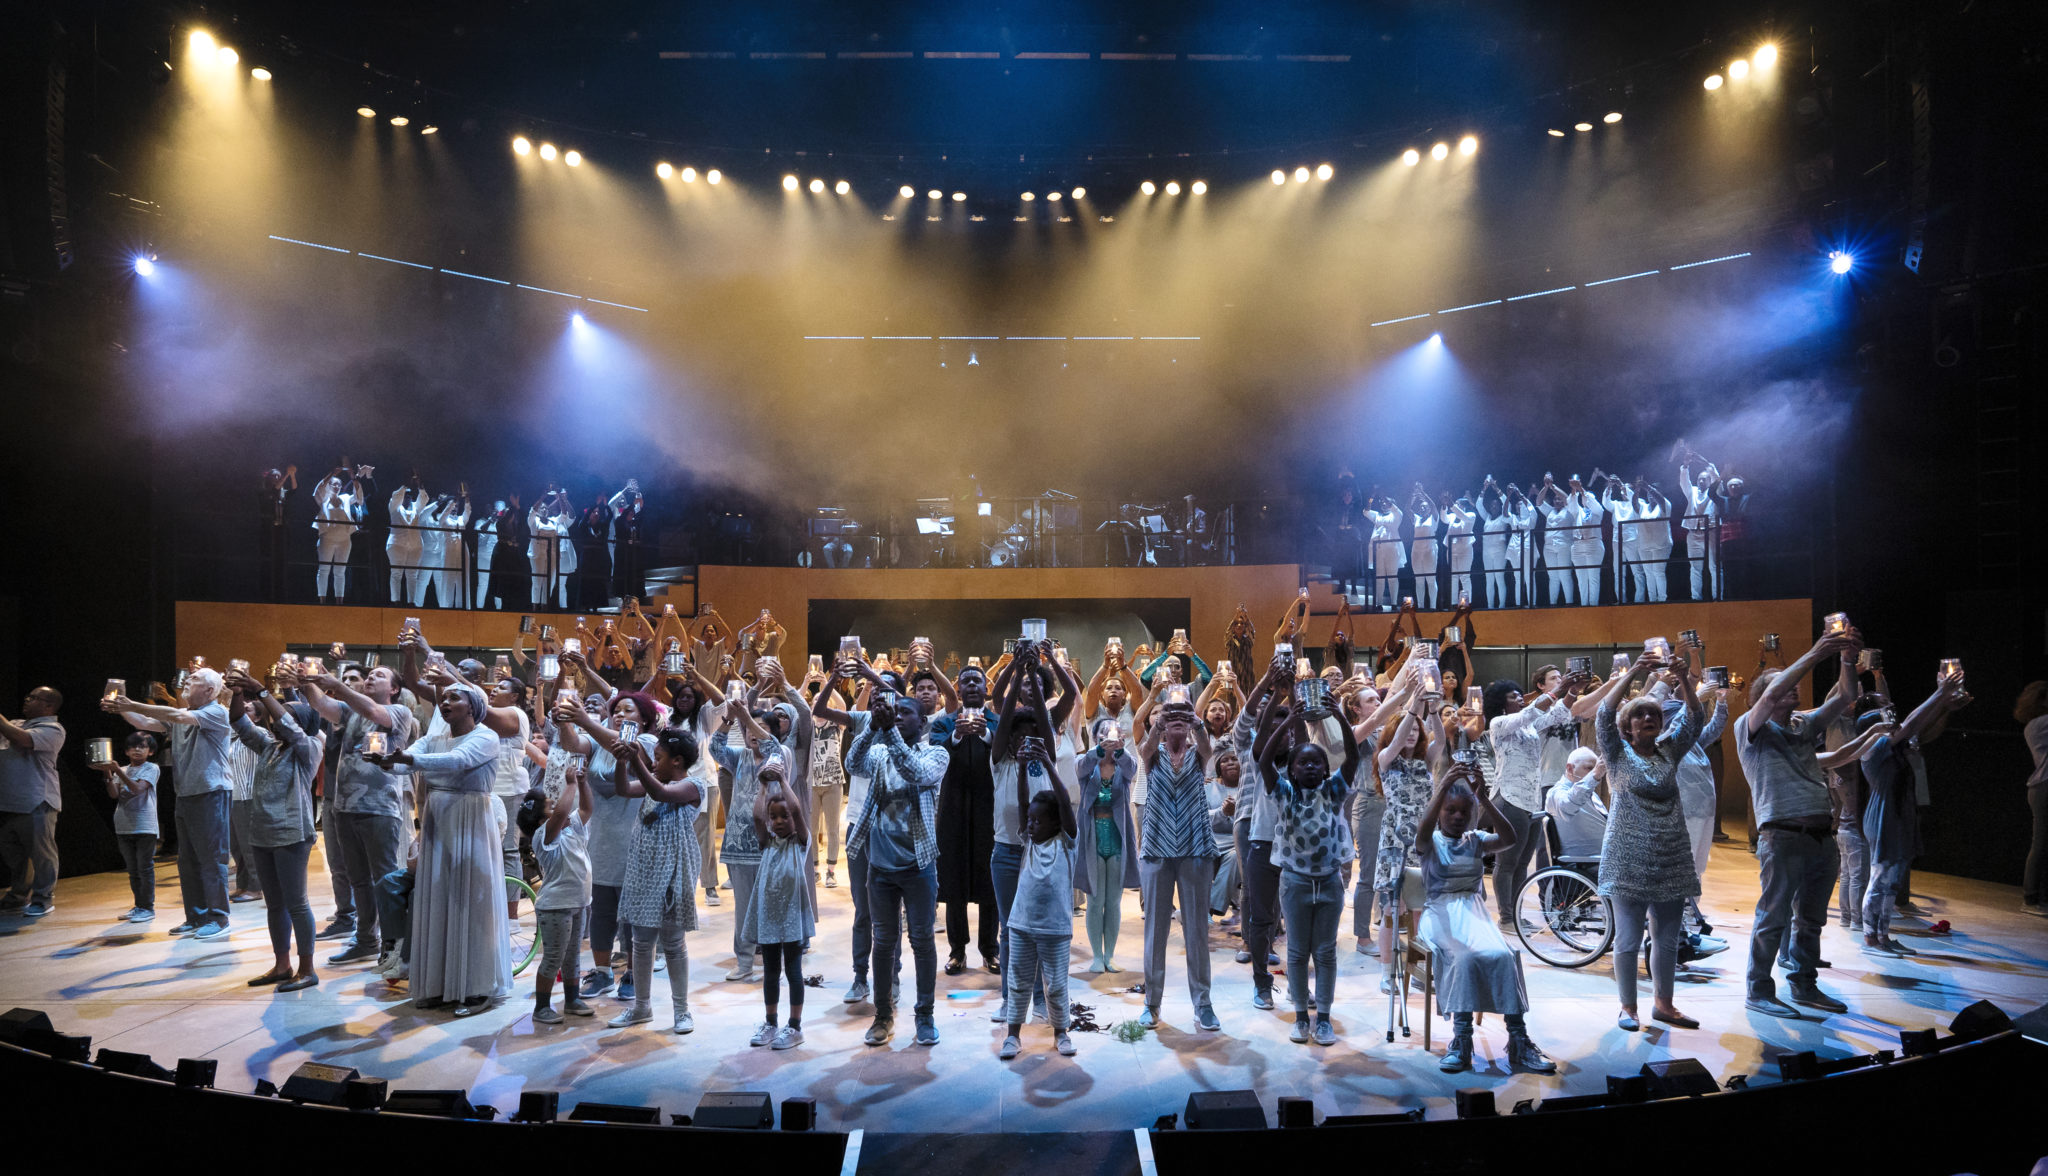 Thames Reach service users receive standing ovation at the National Theatre